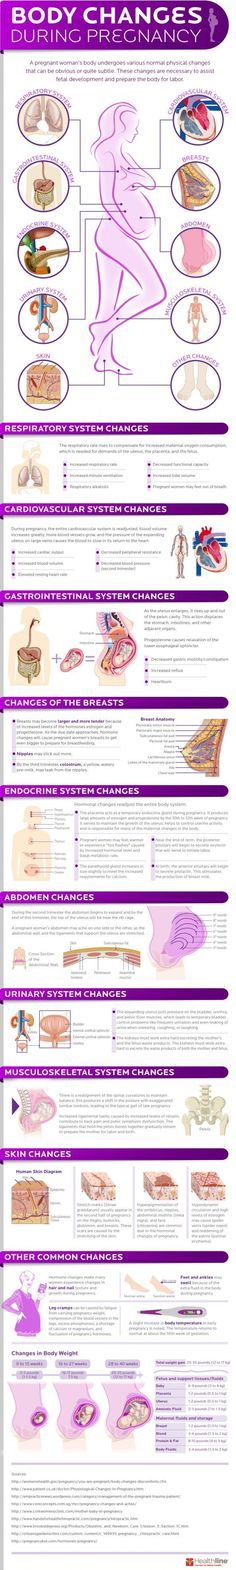 Body Changes During Pregnancy Infographics #pregnancy #infographics #pregnant #body #health